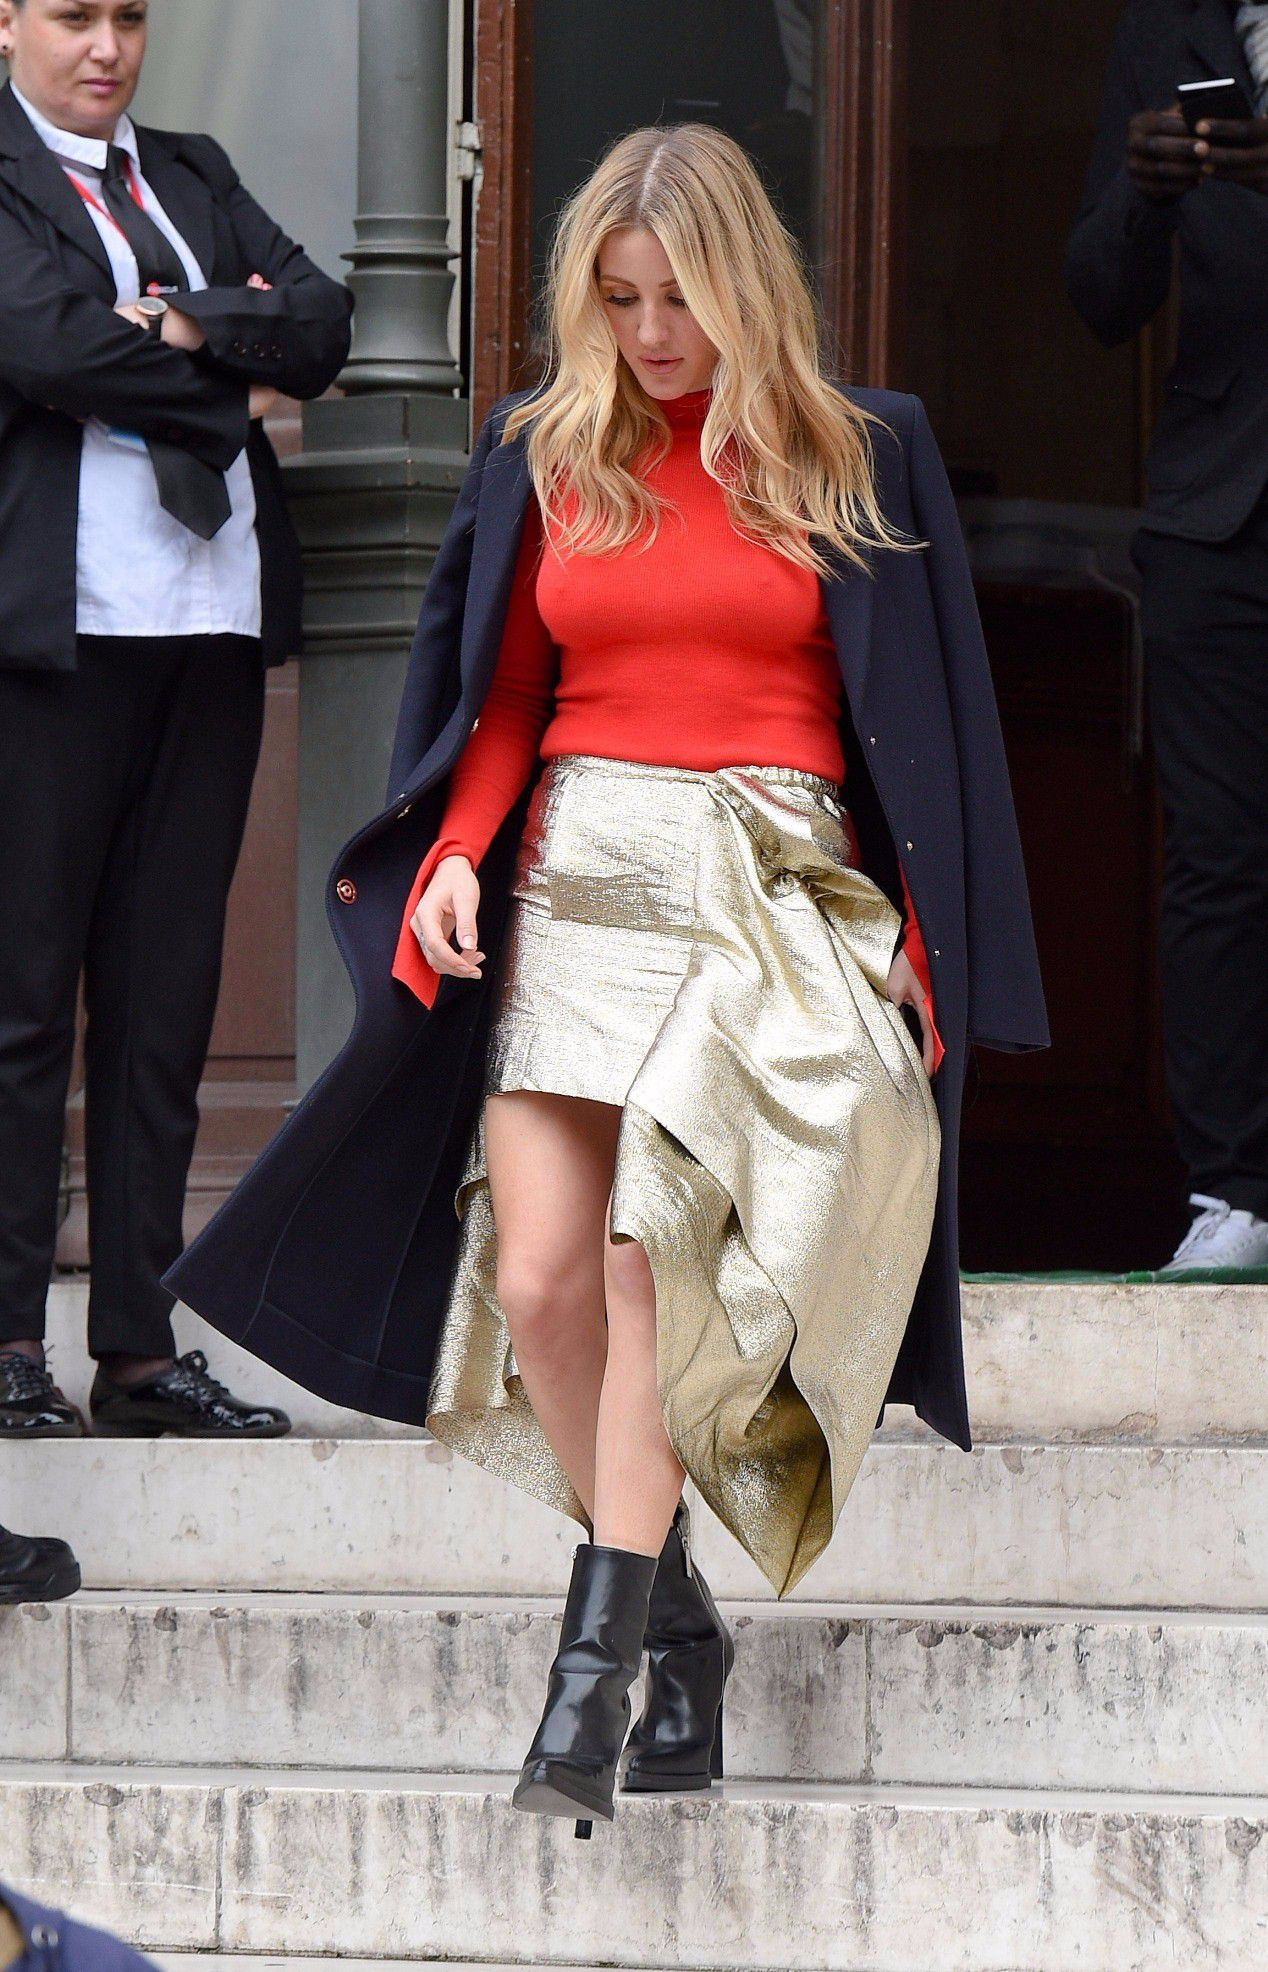 ellie-goulding-braless-in-see-thru-top-at-a-fashion-show-in-paris-2461